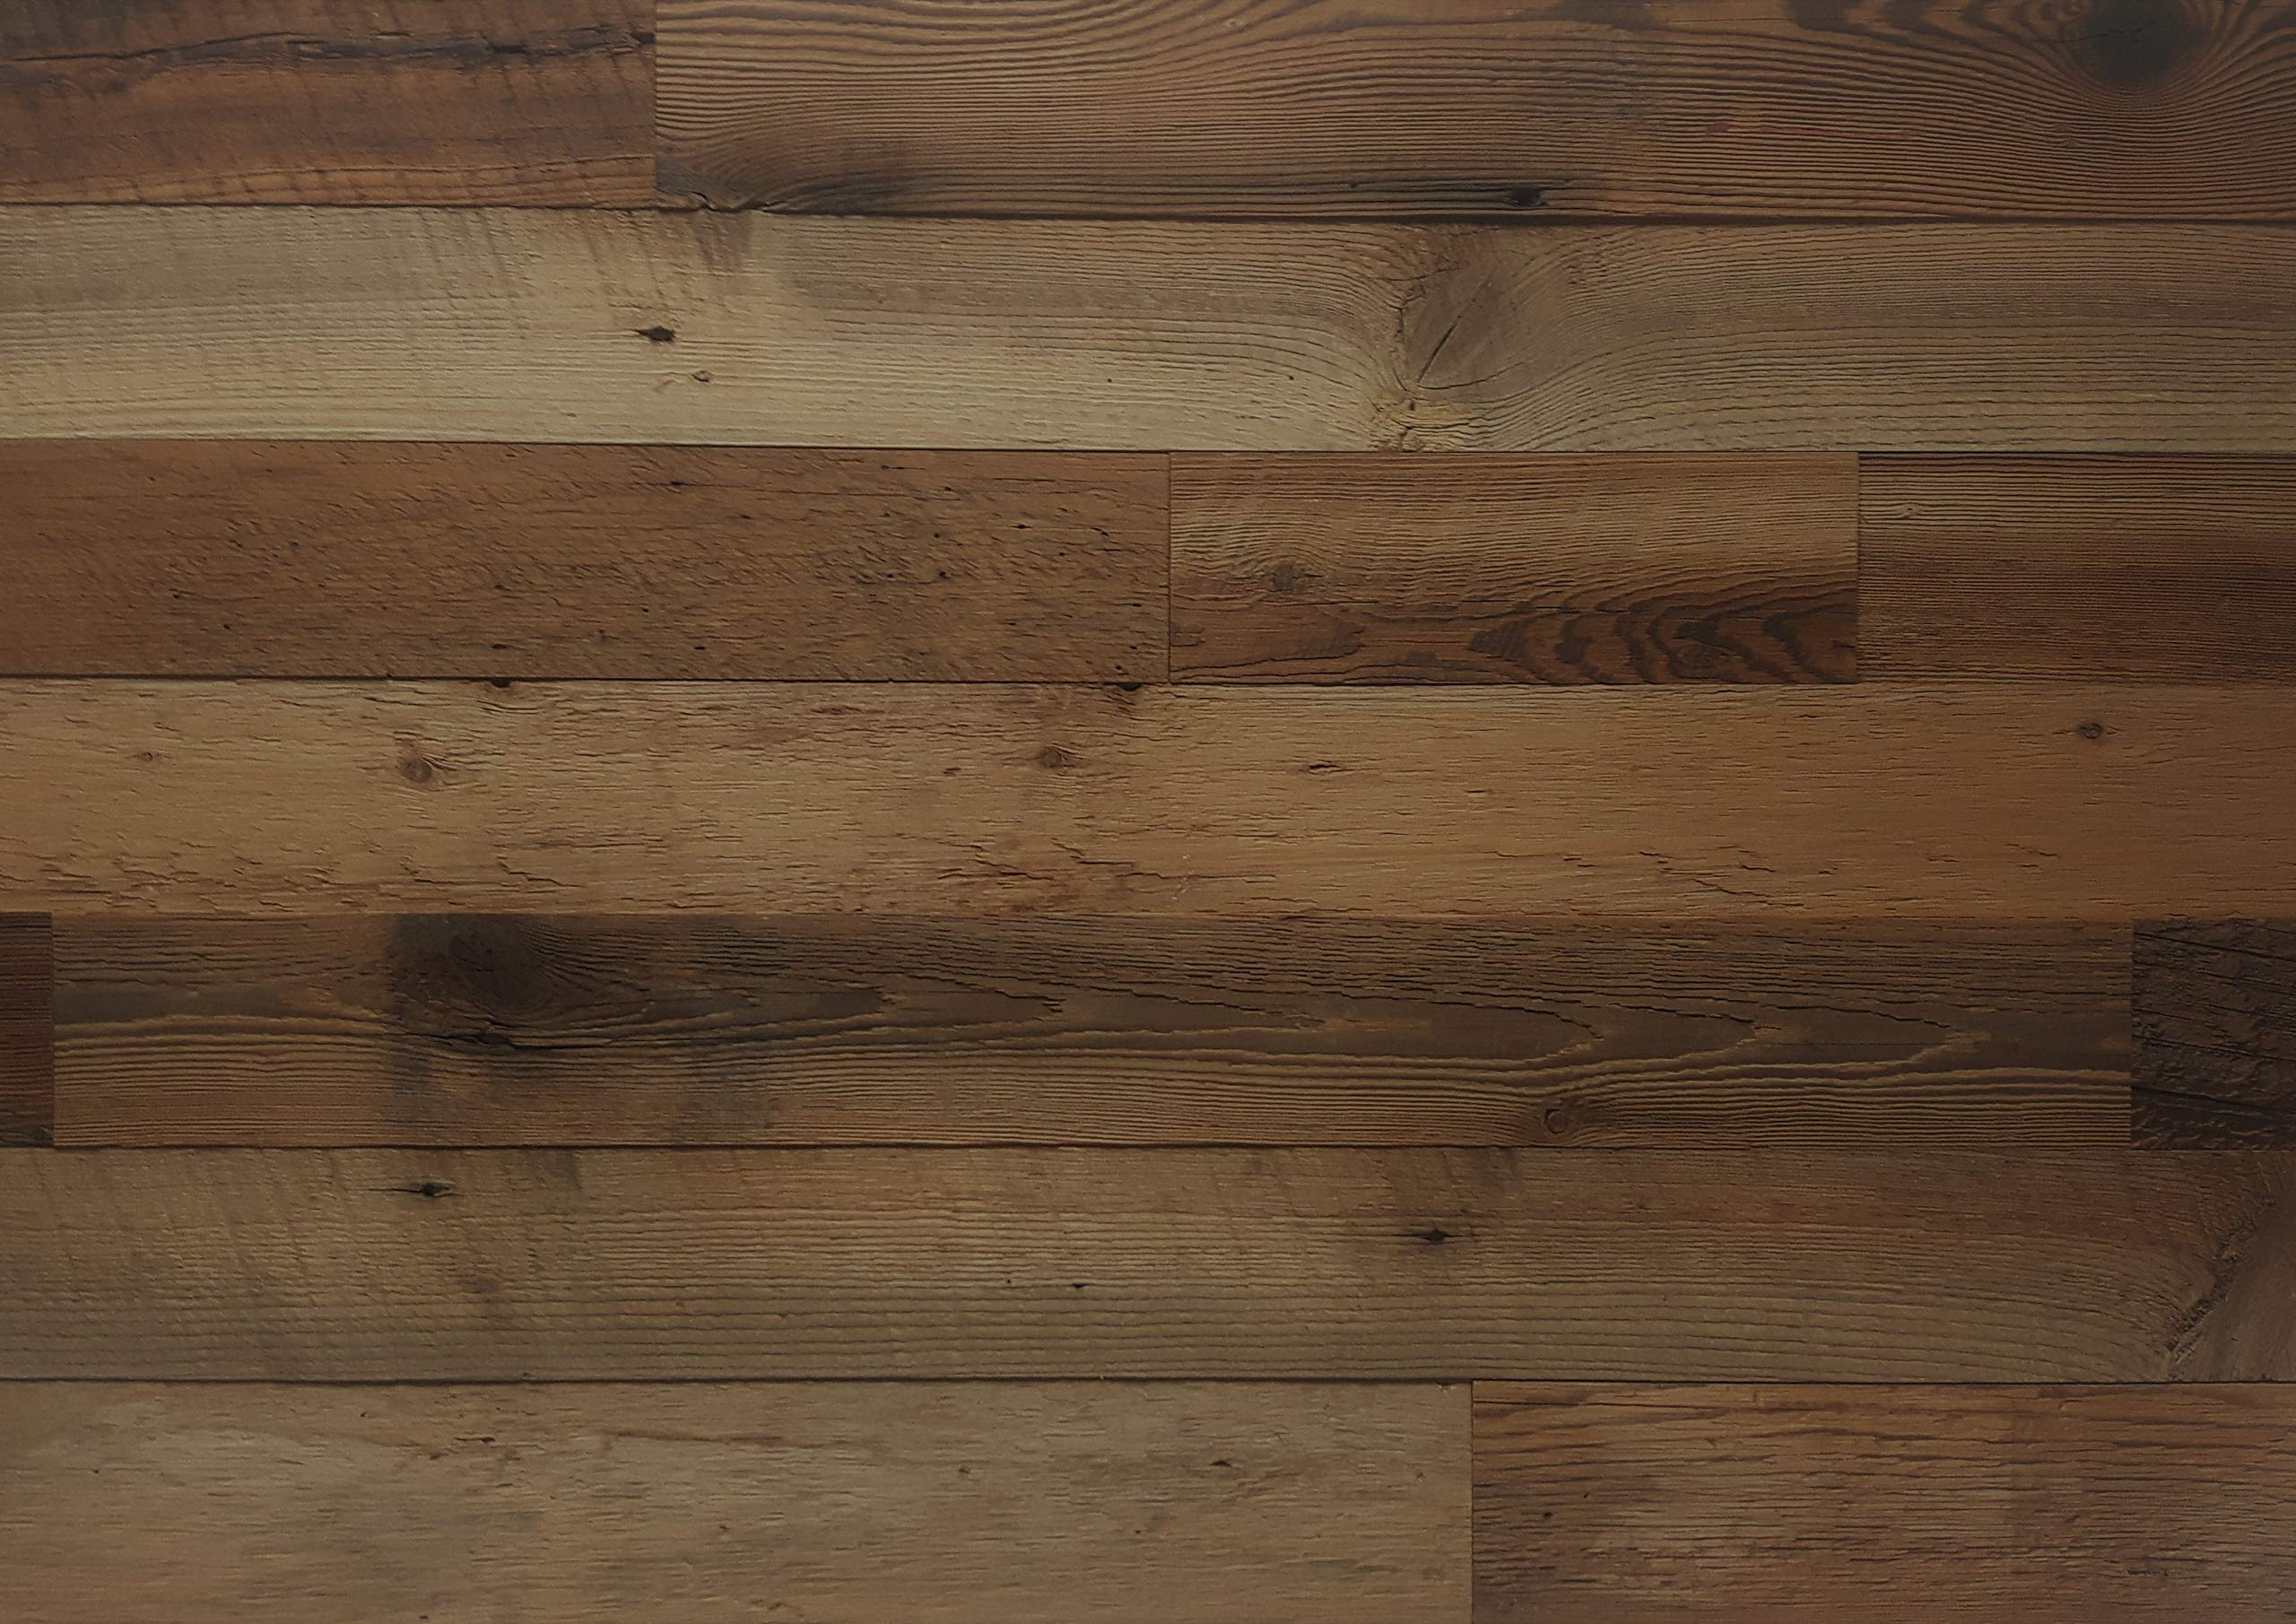 EAST COAST RUSTIC Reclaimed Barn Wood Wall Panels - Easy Install Rustic Wood DIY Wall Covering for Feature Walls (20 Sq Ft - 3.5'' Wide, Brown Natural)